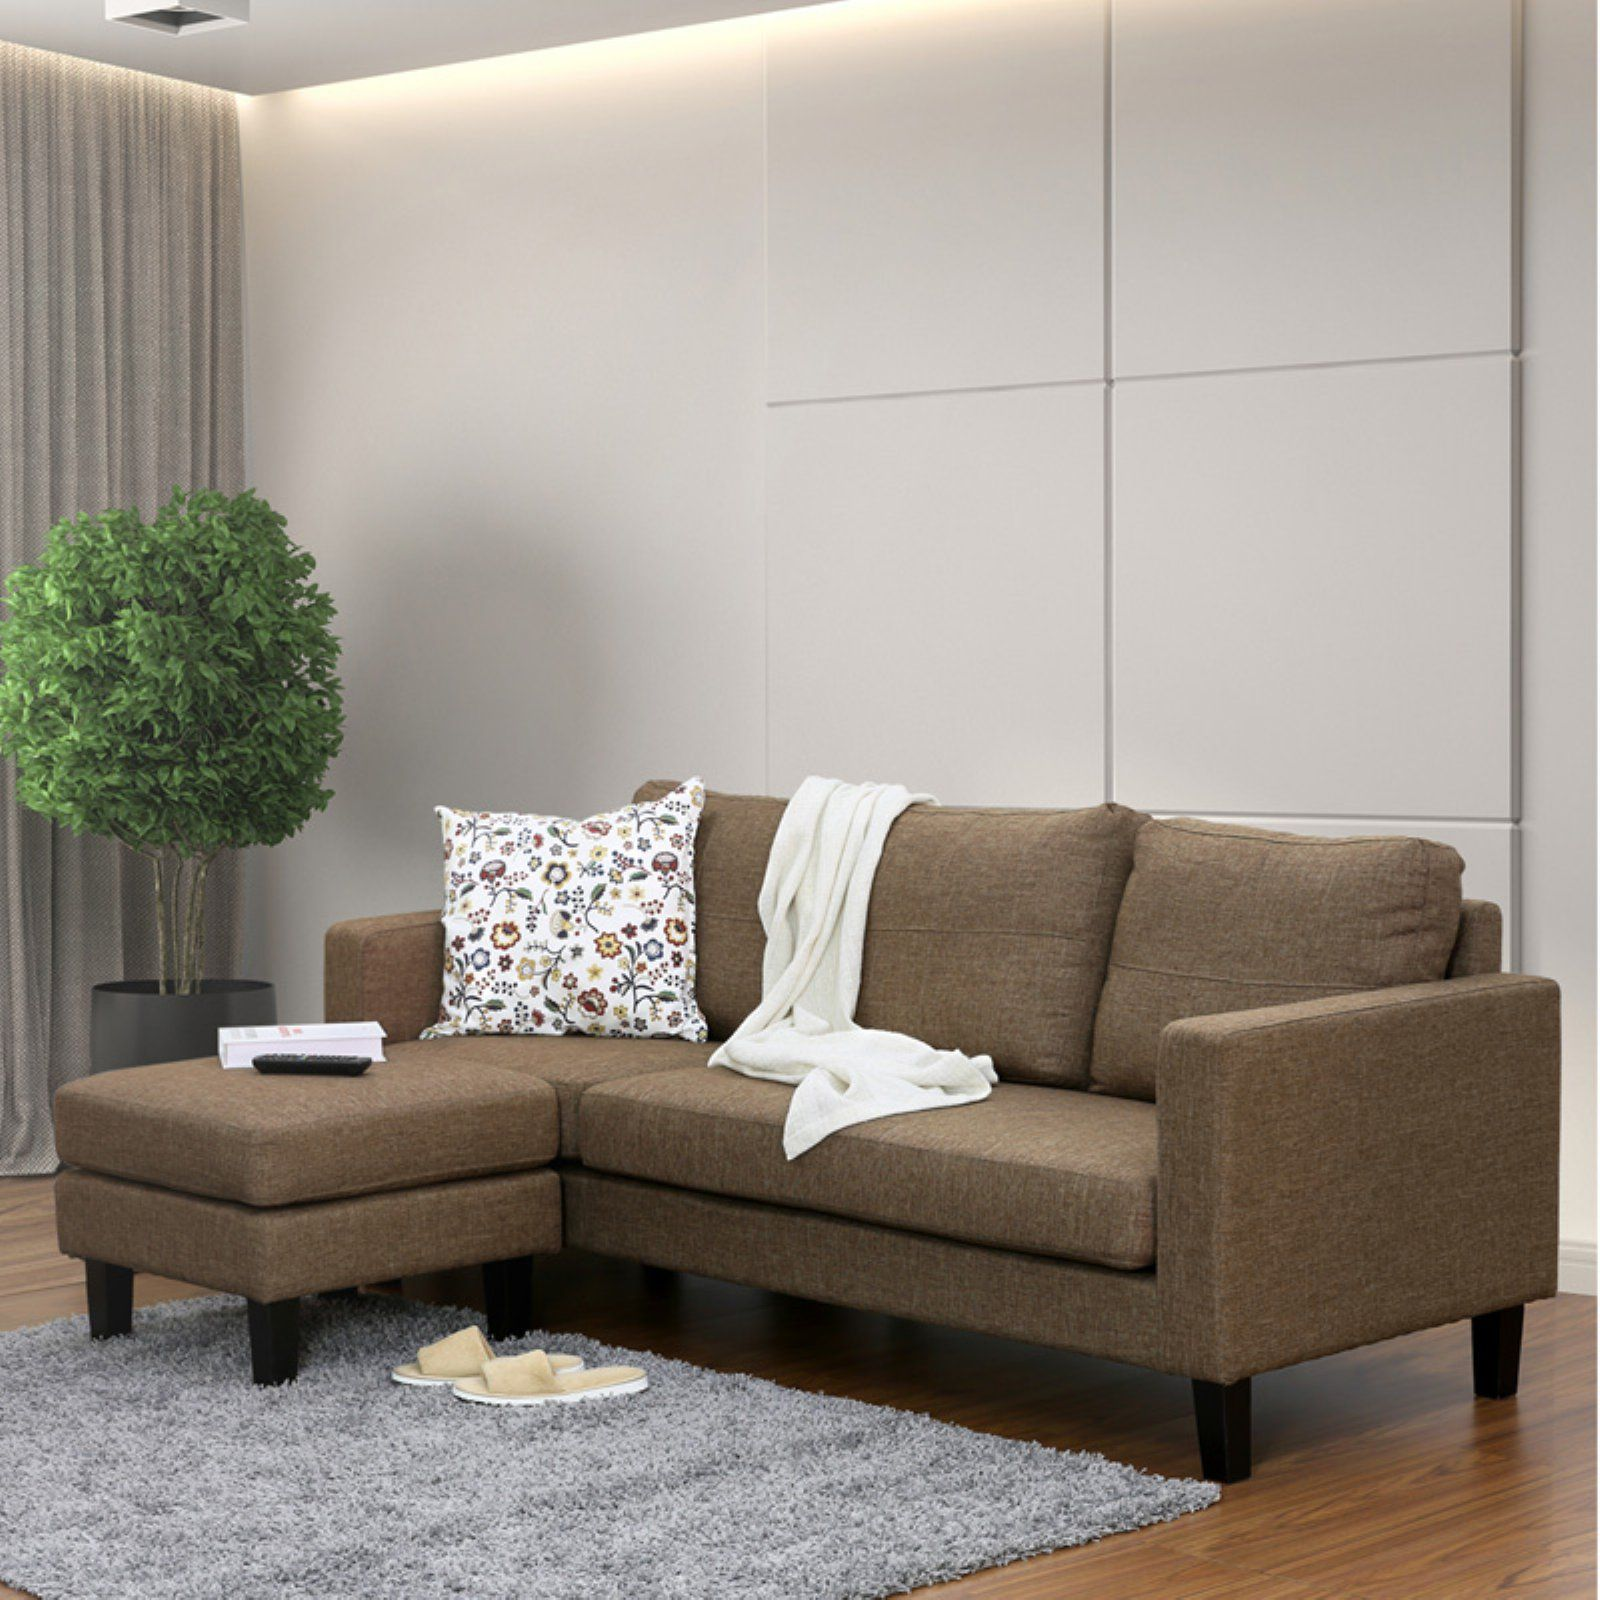 In Furinno Brown Sofa Simply Chaise Home With OttomanProducts I6byfgvmY7